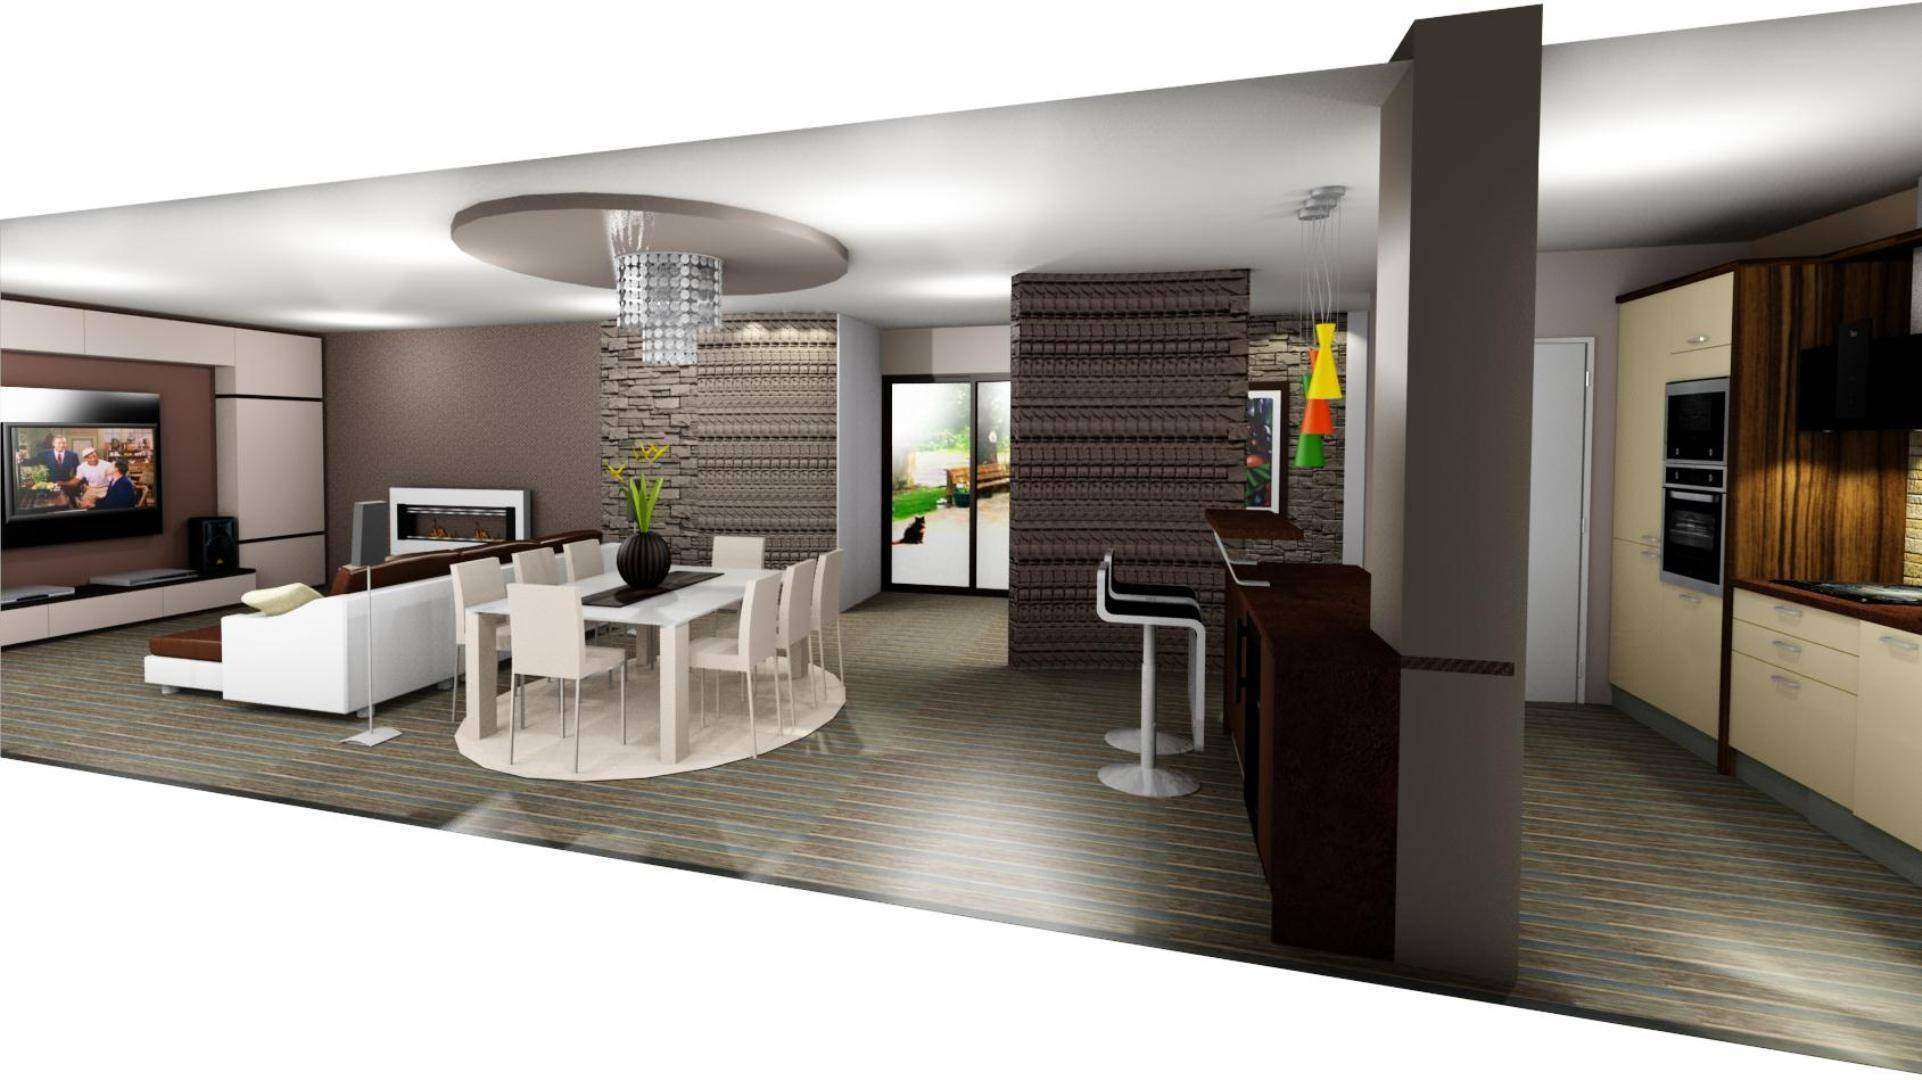 <a href=&quot;proeictare 3d mobila la comanda&quot;>plan 3d mobilare  open space living cu bucatarie <img src='https://www.unican.ro/wp-content/themes/vita/img/dreapta.png' class='pull-right hidden-xs' style='margin-right:-10px;margin-top:-10px; max-height:41px'></a>